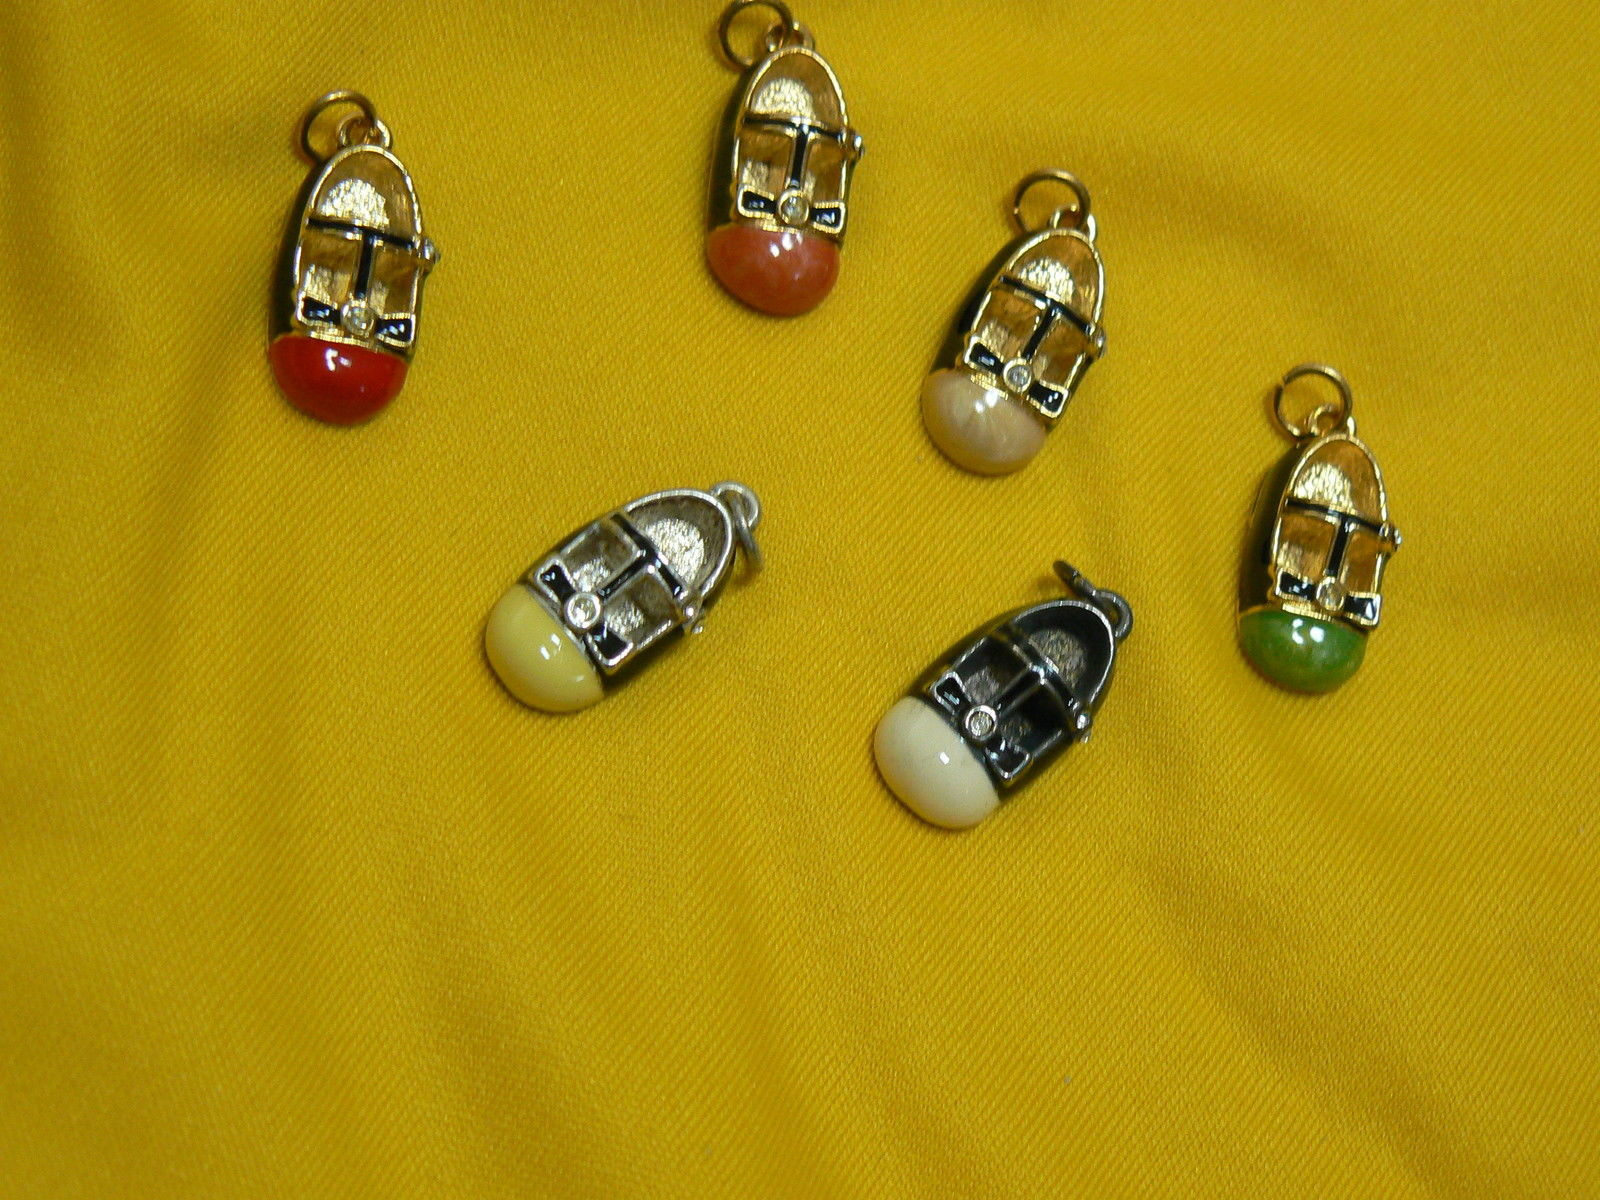 Firenza Set of Six Goldtone/Silvertone Enameled Shoe Charms